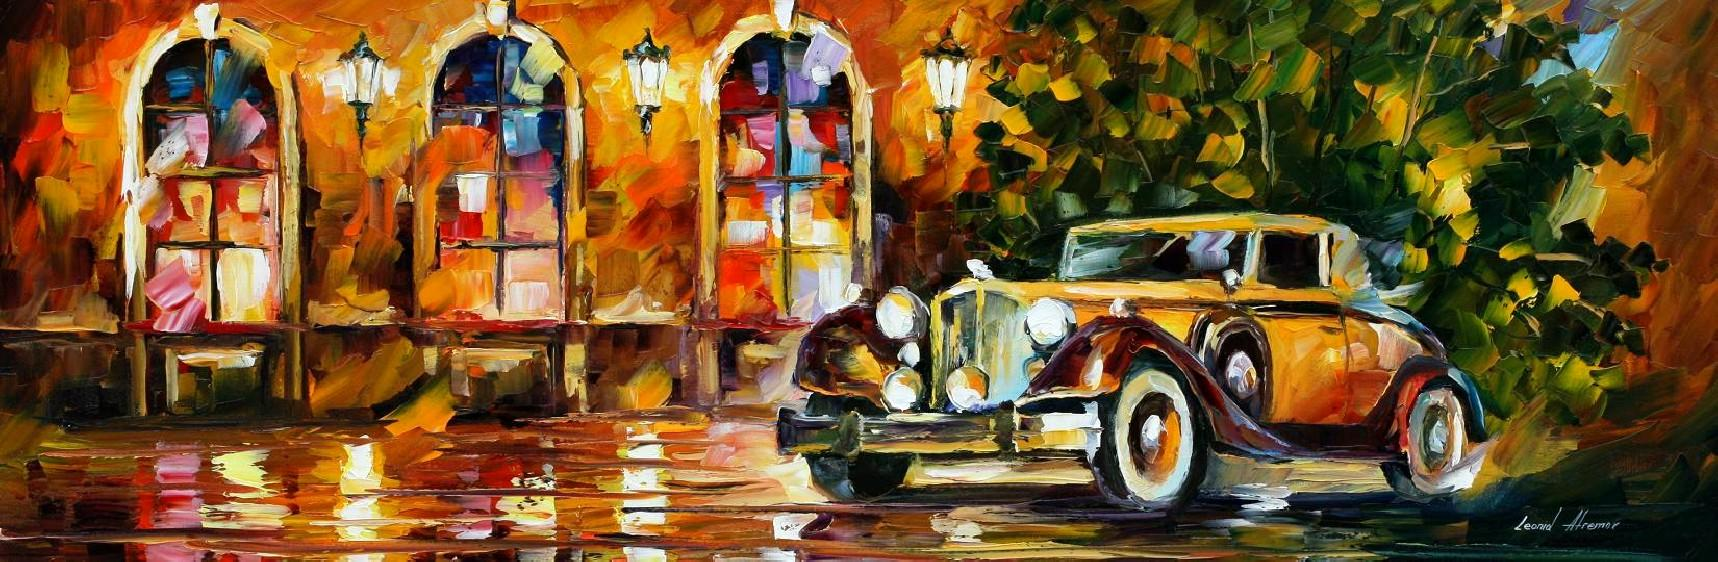 Modern impressionism palette knife oil painting City057